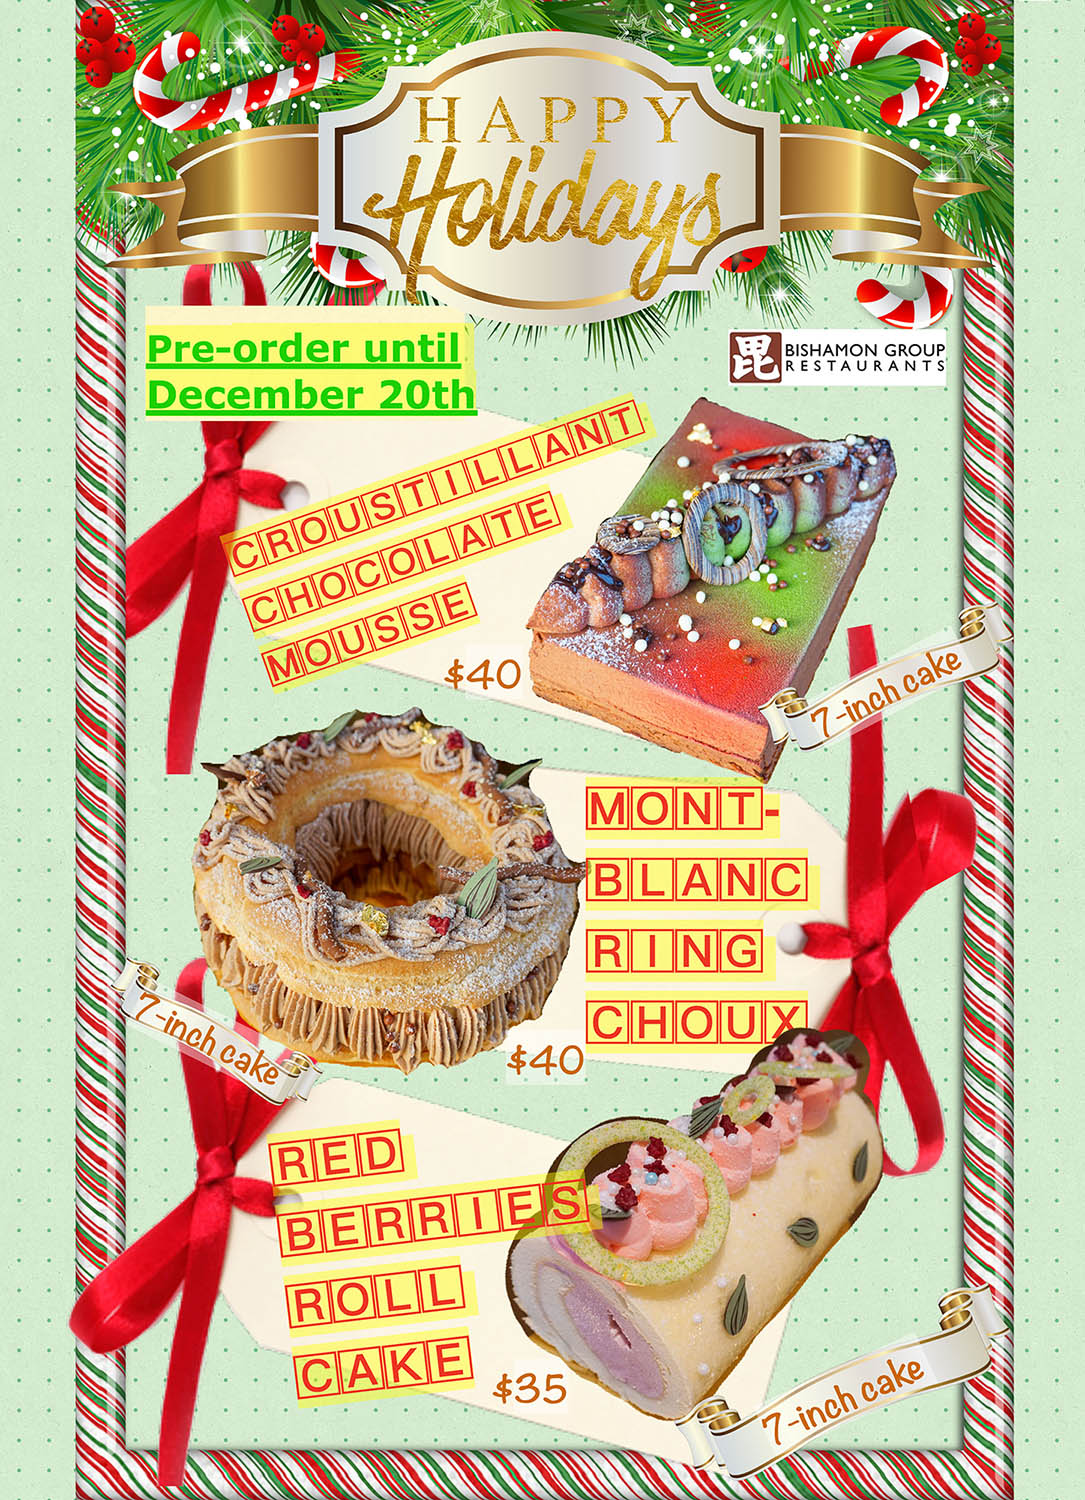 Pre-Order Midoh Holiday Cakes until December 20th.